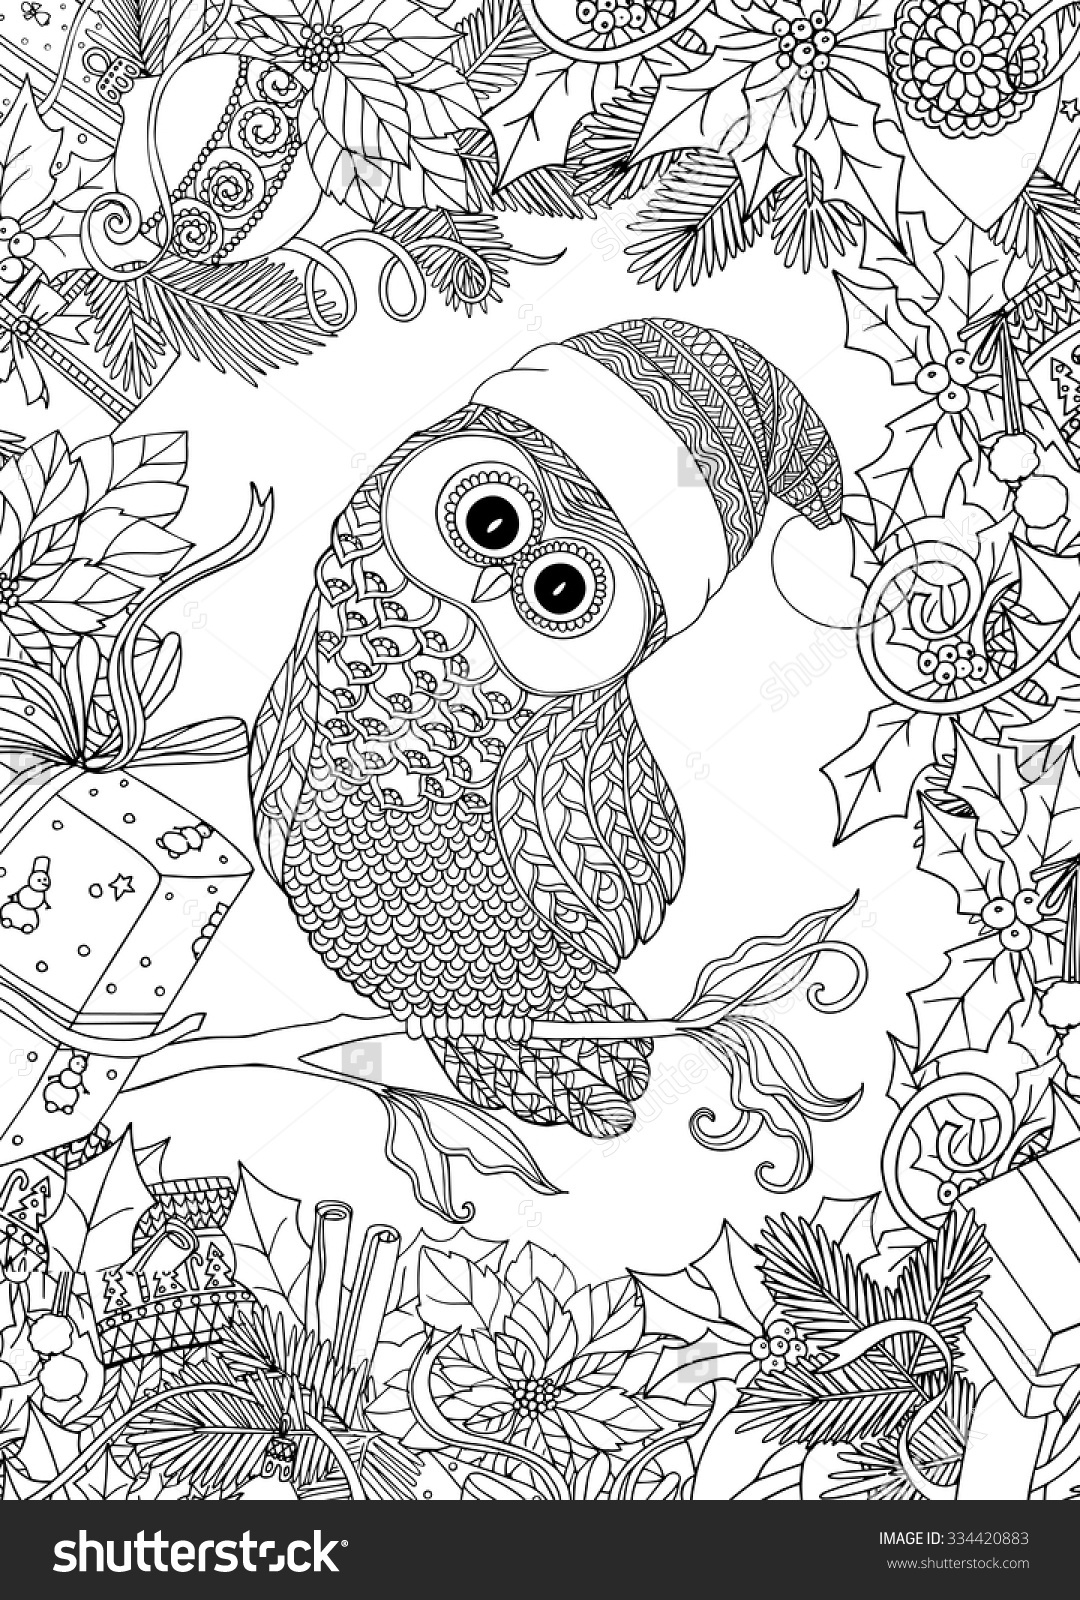 Detailed Christmas Coloring Pages For Adults With Nightmare Before Adult